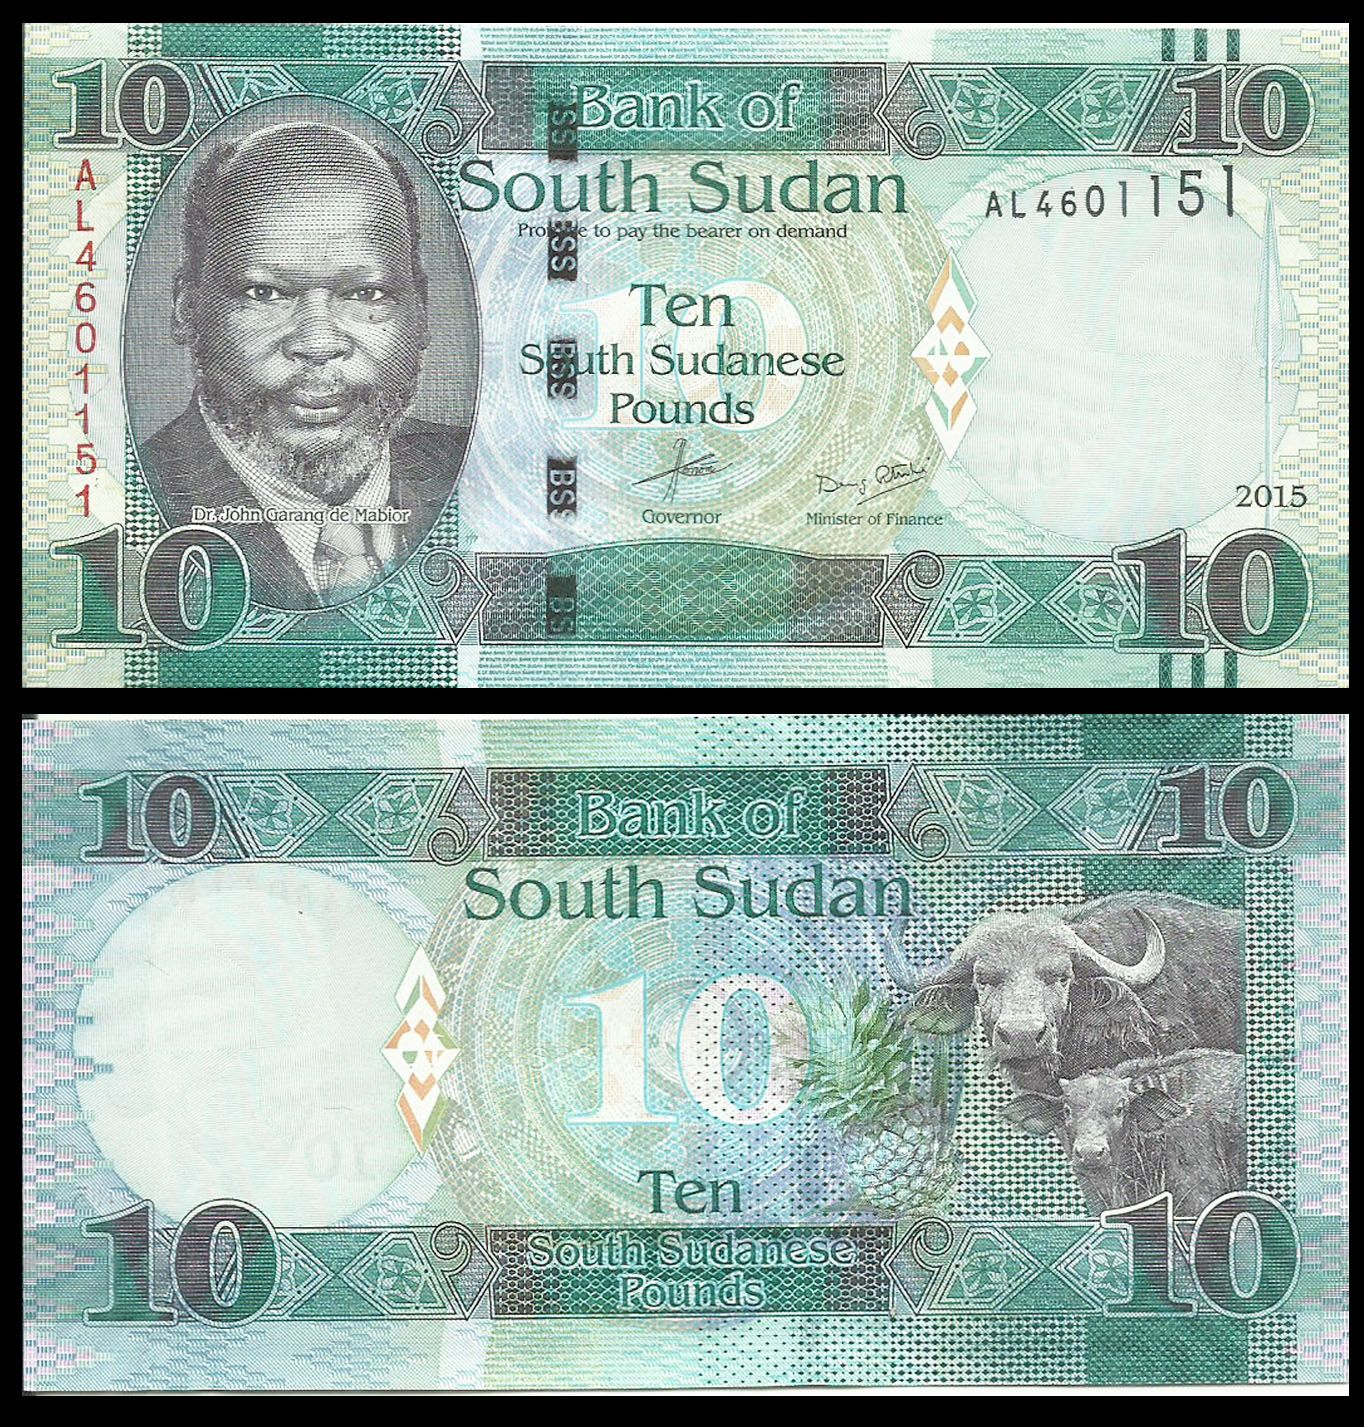 South Sudan 10 Pounds In